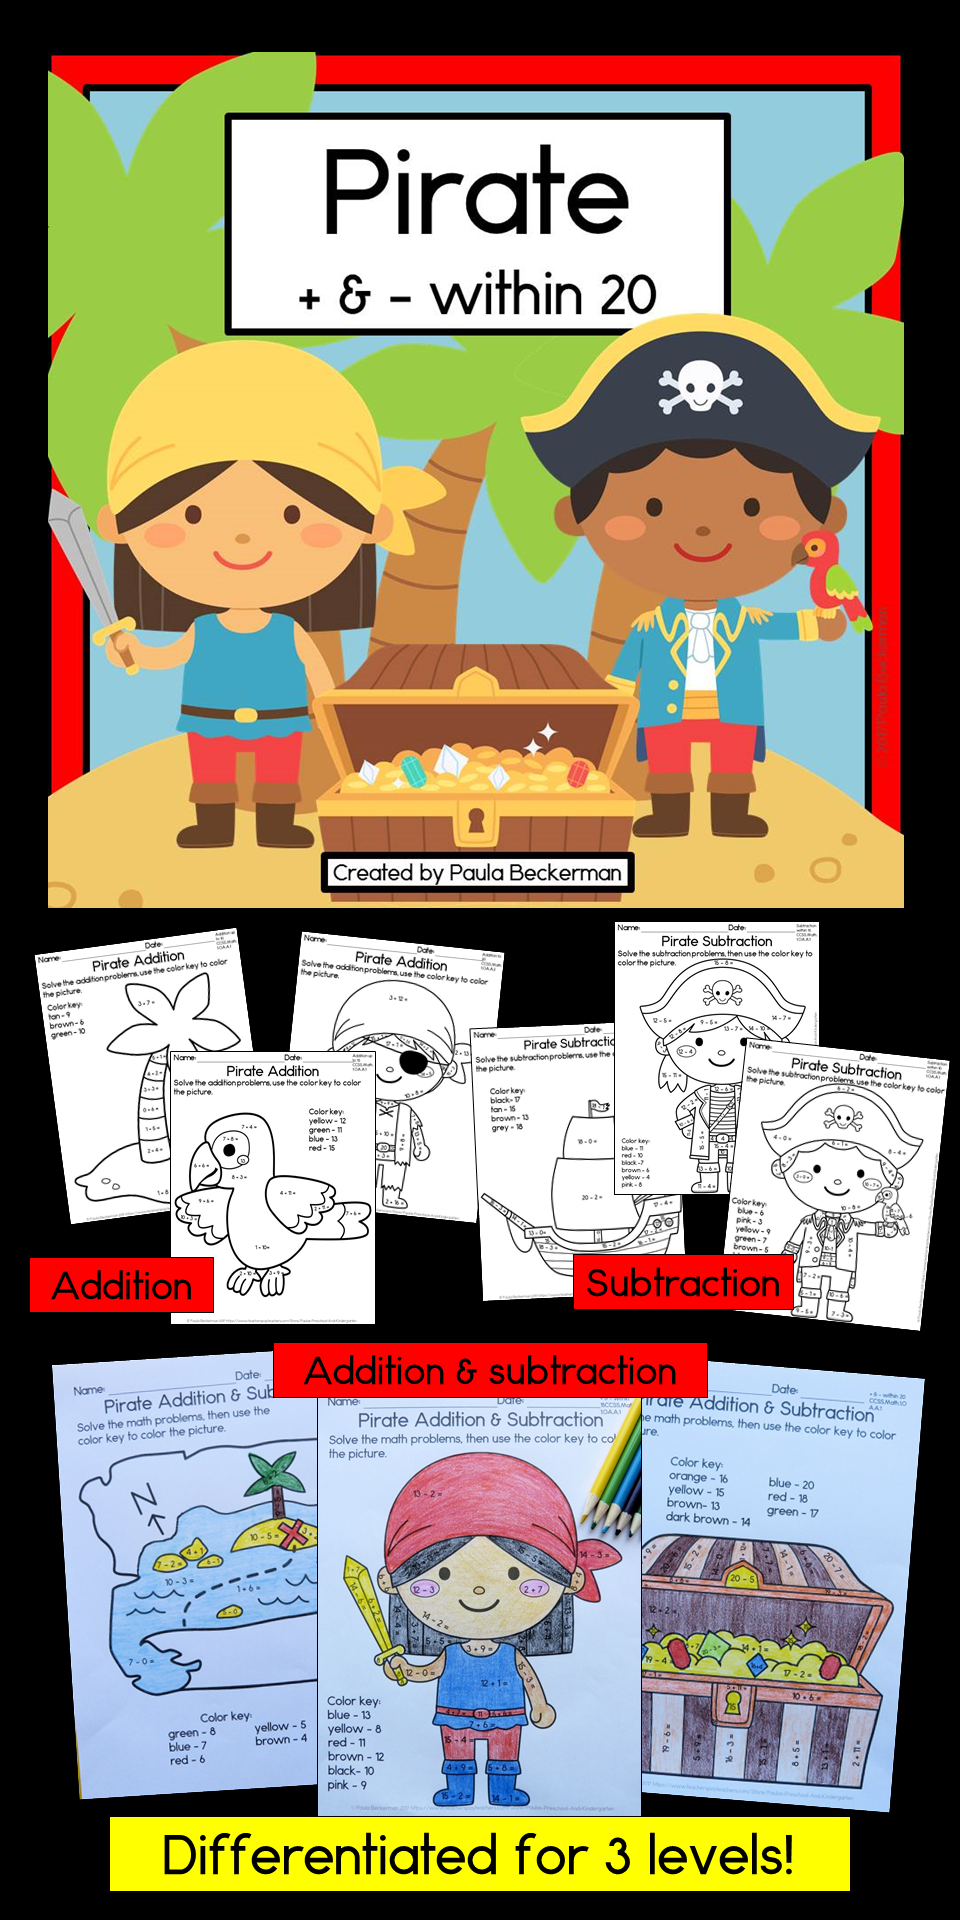 Addition And Subtraction Within 20 Worksheets Pirate Theme For Kindergarten And First Grade Addition And Subtraction Subtraction Pirate Theme [ 1920 x 960 Pixel ]